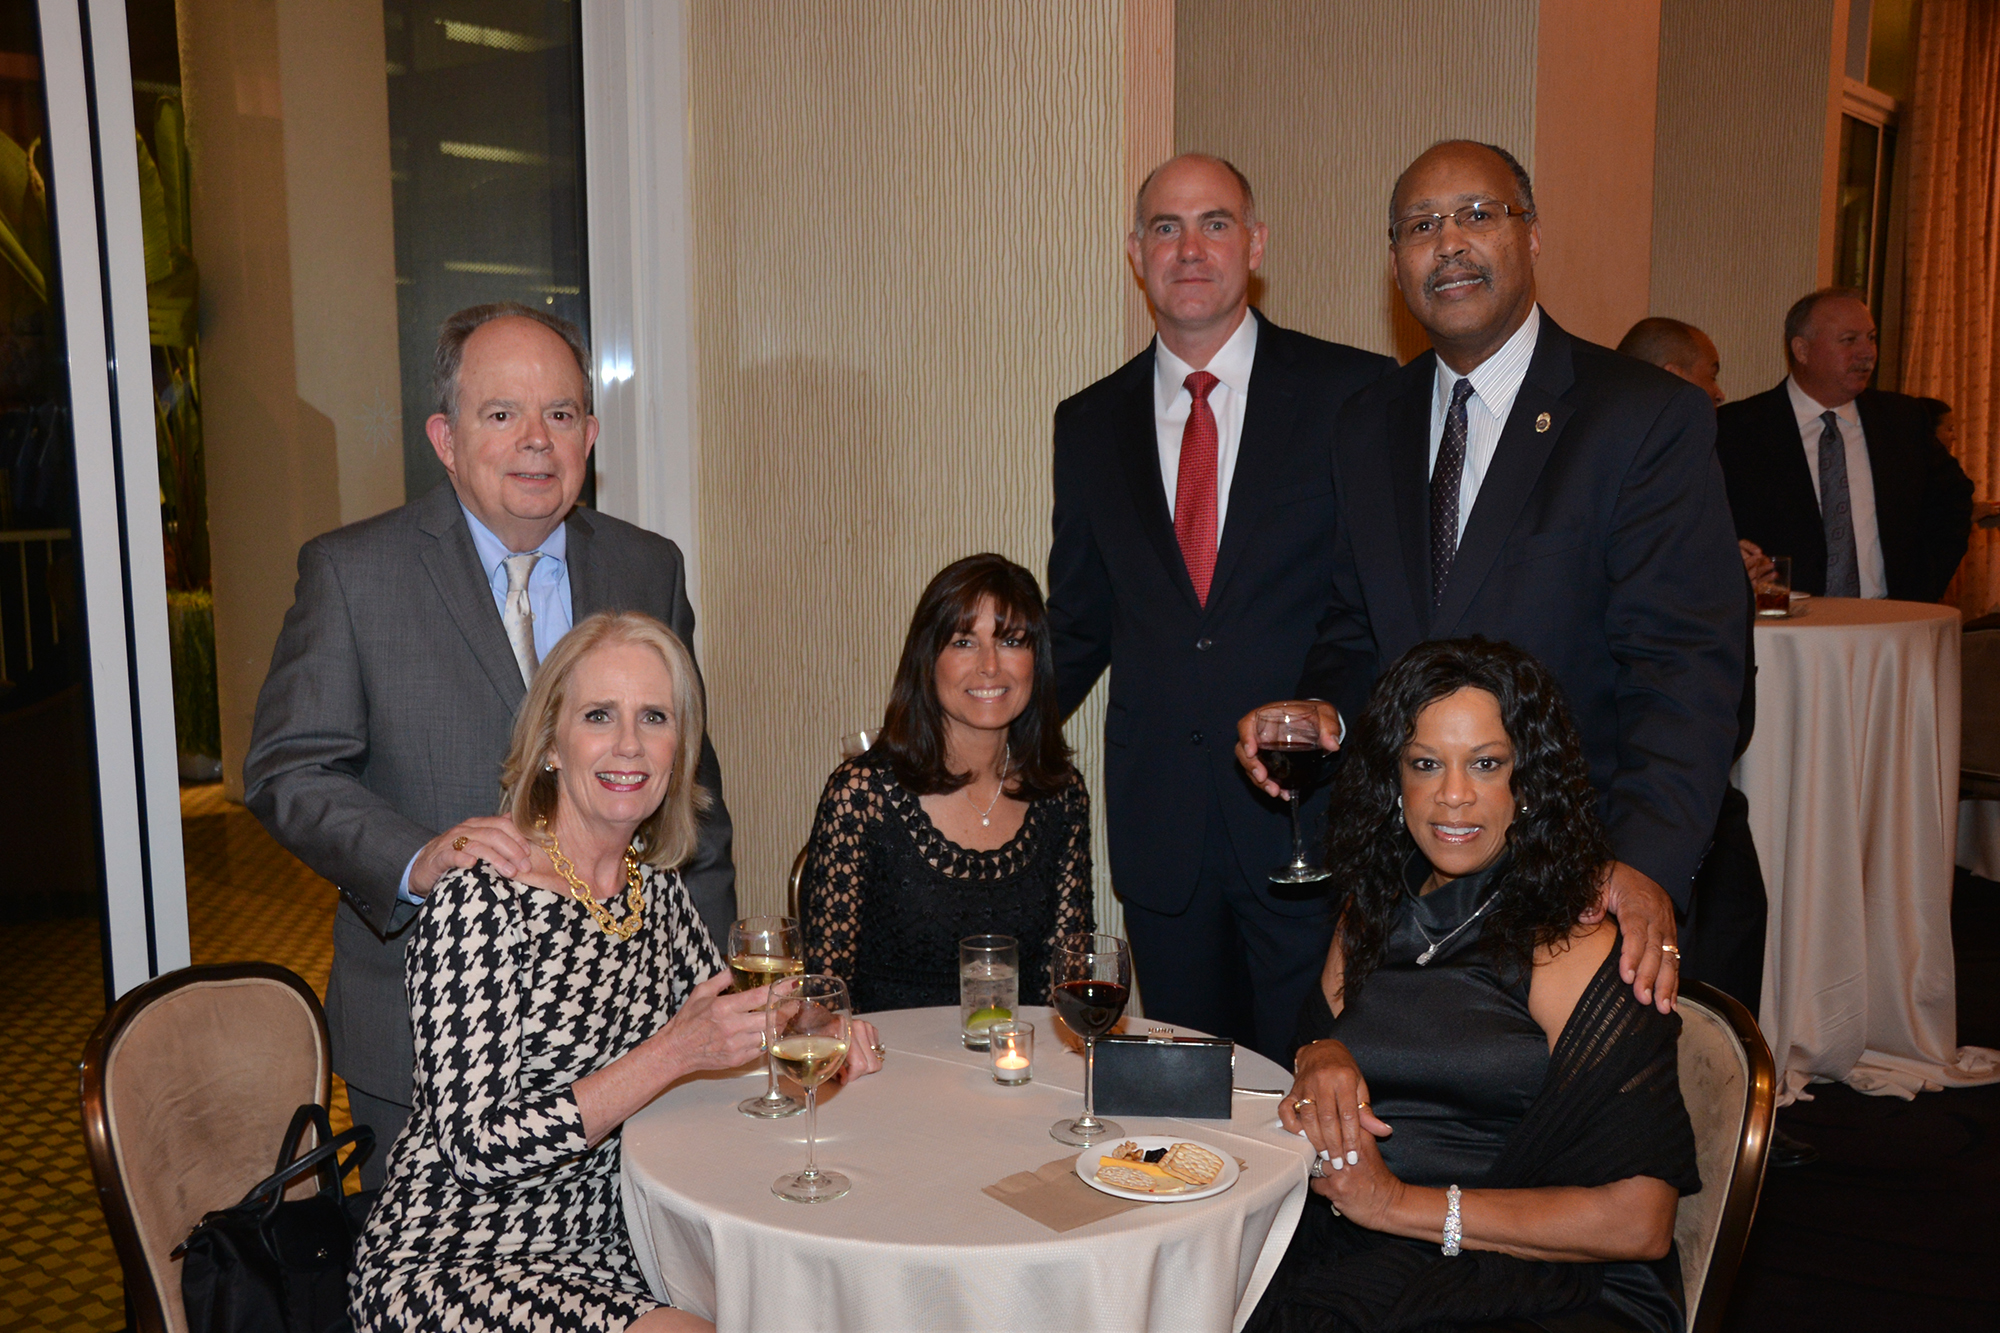 DEA Educational Foundation Gala Awards Dinner (Jack Taylor & Ilene, Derek Maltz & Wife, Terry & Marie)